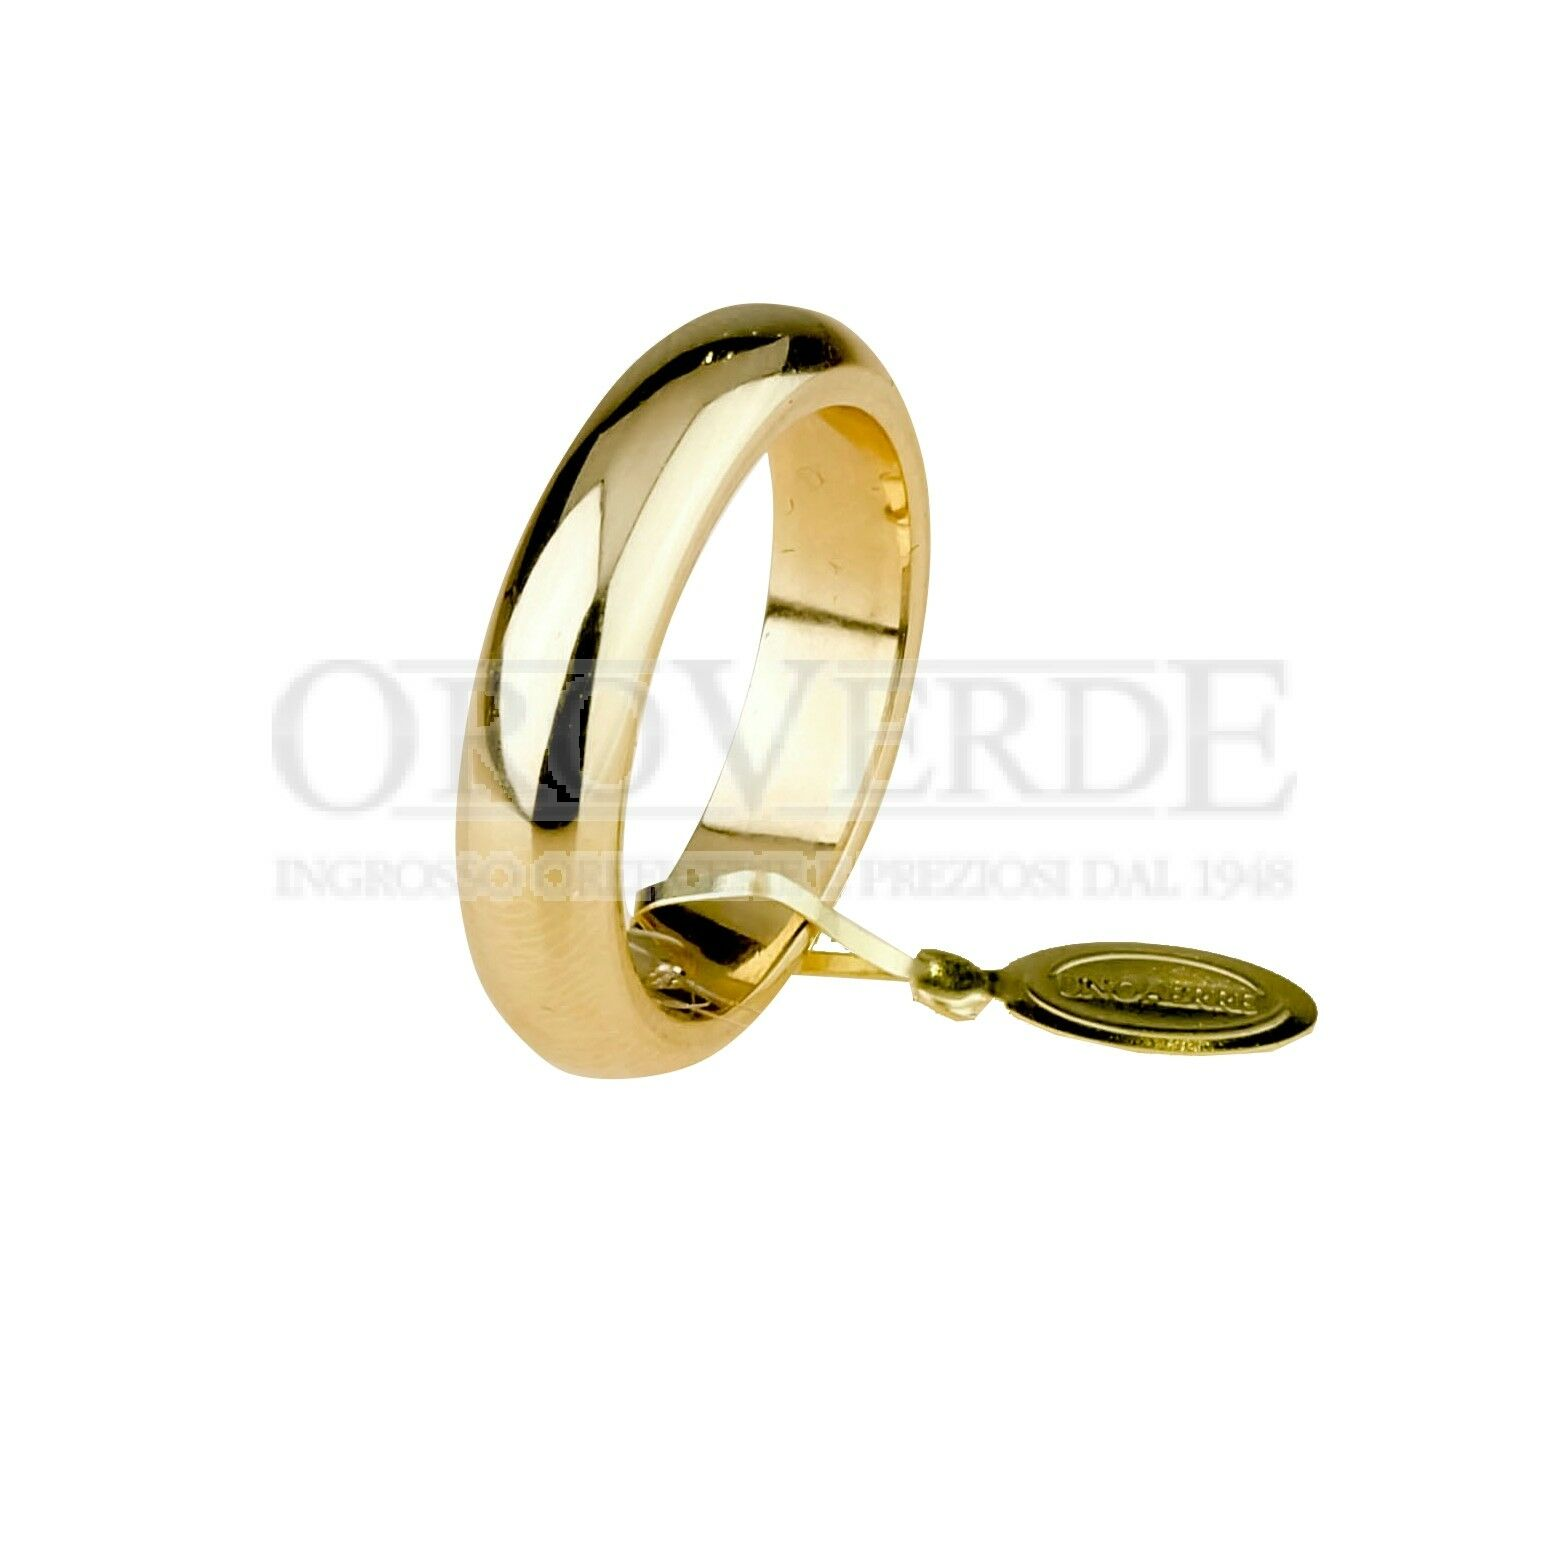 Fede classica Unoaerre gr.6 larg.mm.4 in in in oro giallo 750% 18kt 60AFN1G dfb8c8